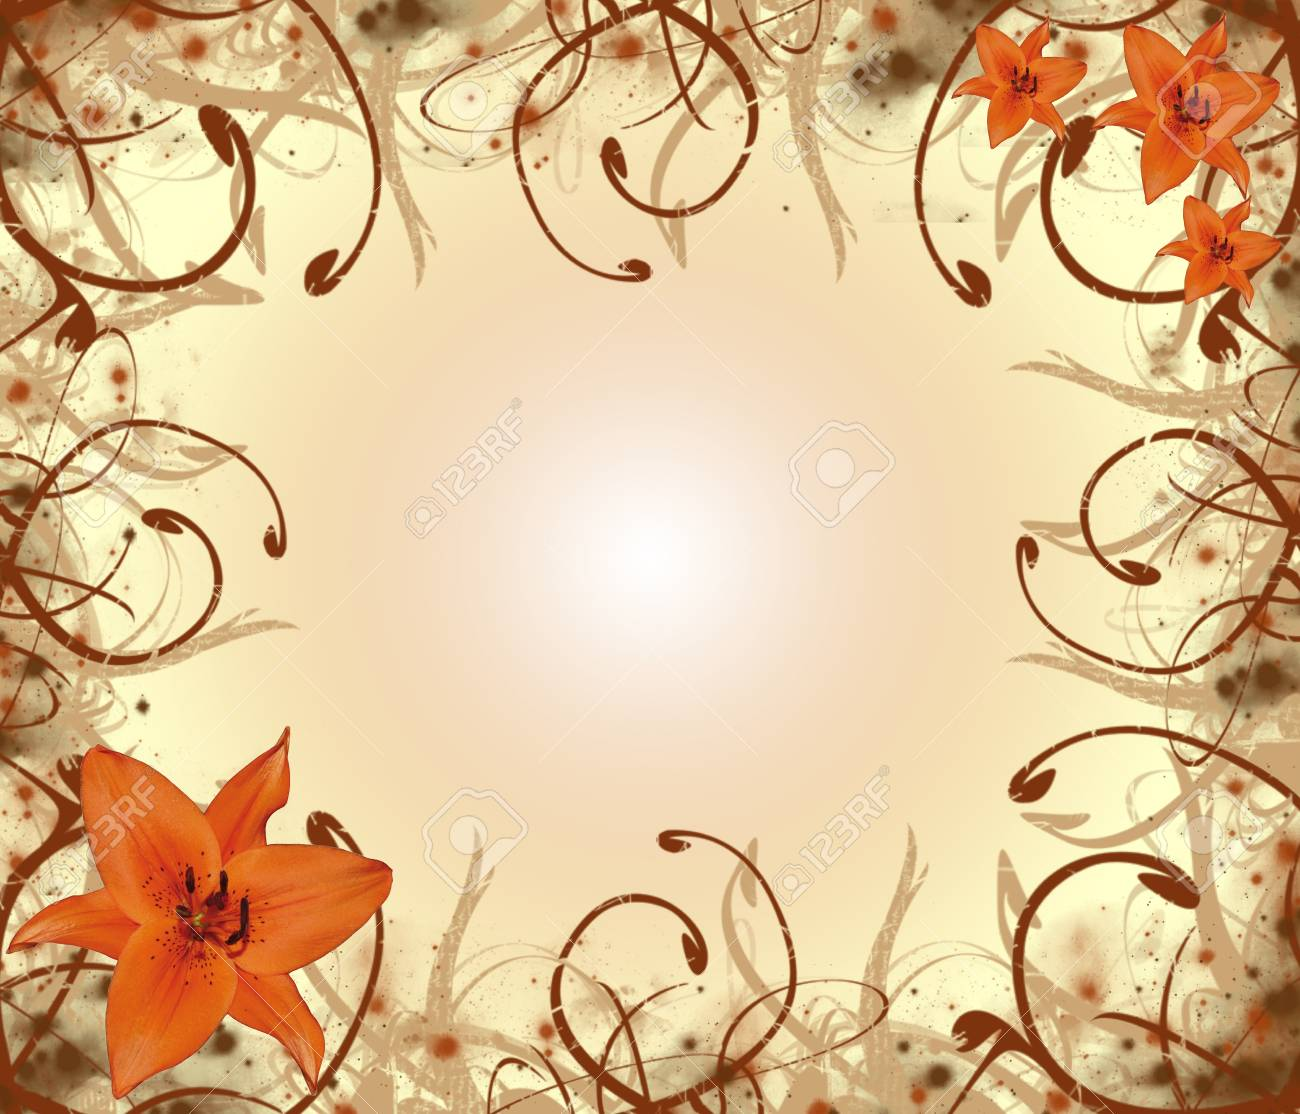 flower background Stock Photo - 17081341